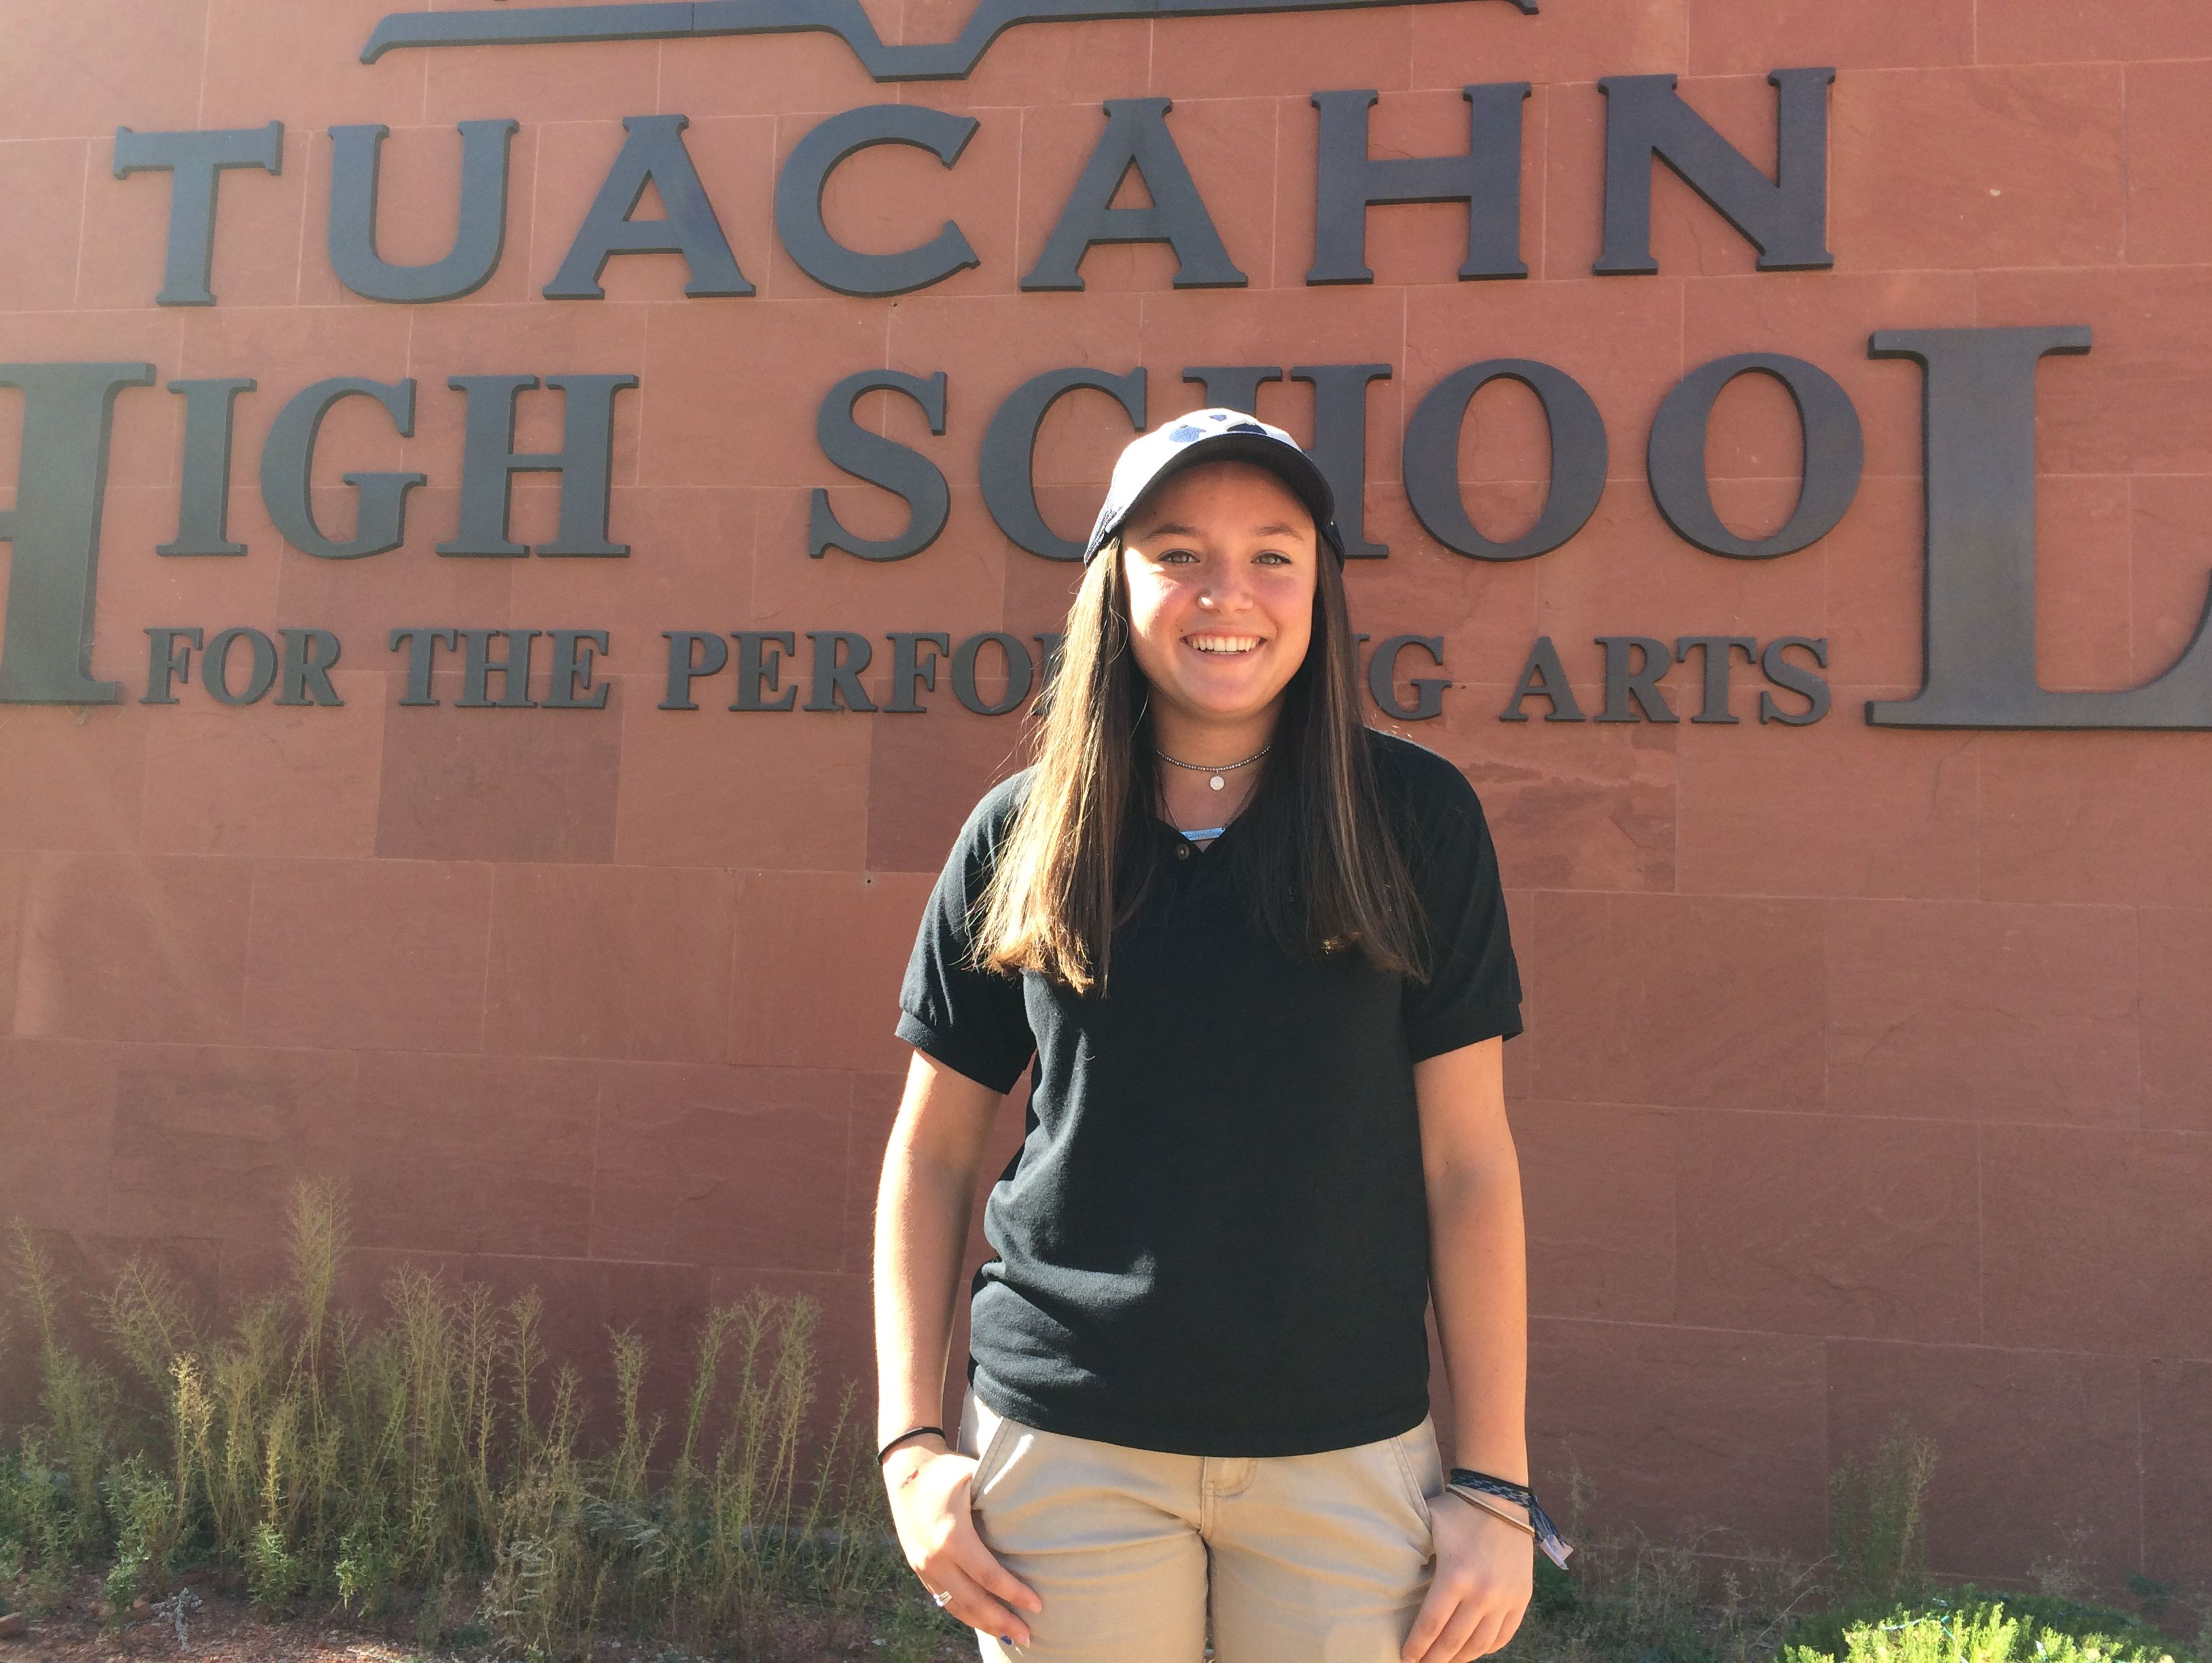 Gracie Richens signed her National Letter of Intent to play golf at Brigham Young University Wednesday at Tuacahn High School. Richens became the first-ever student to earn a Division I scholarship at Tuacahn High School. became the first-ever student to earn a Division I scholarship at Tuacahn High School For The Performing Arts.